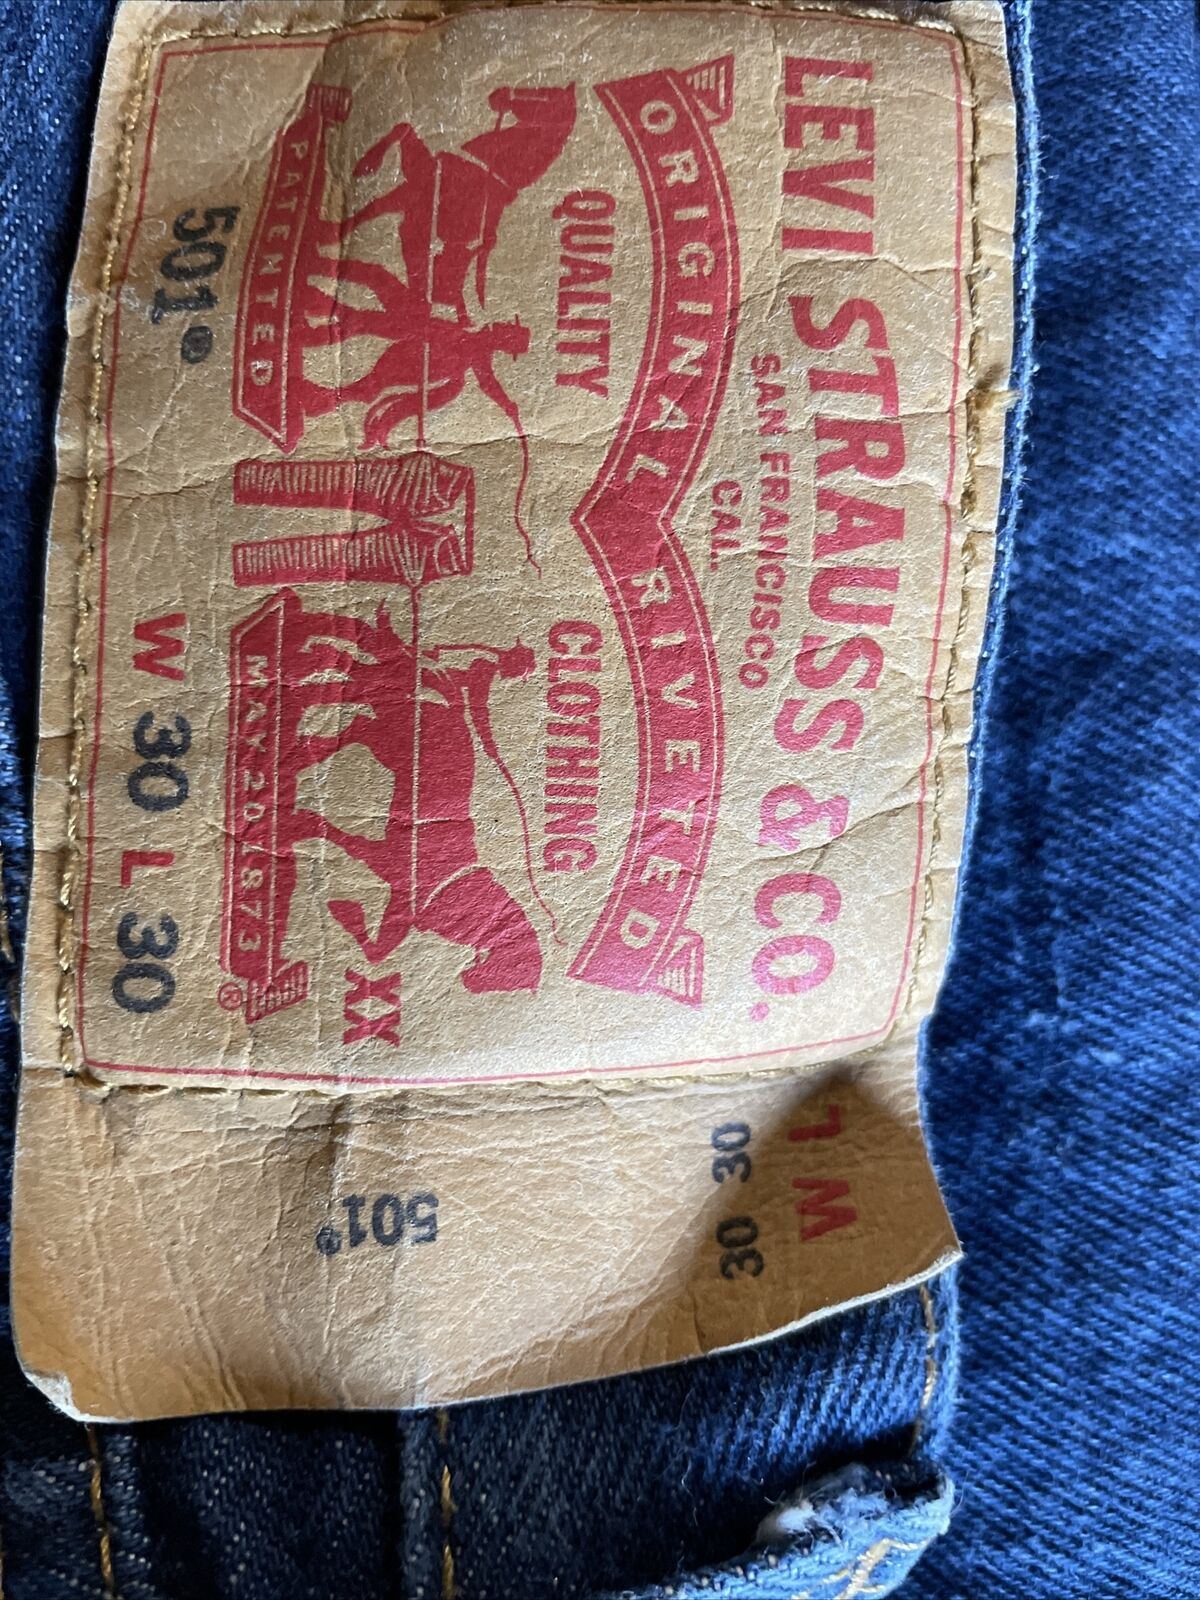 levis 501 made in usa - image 3